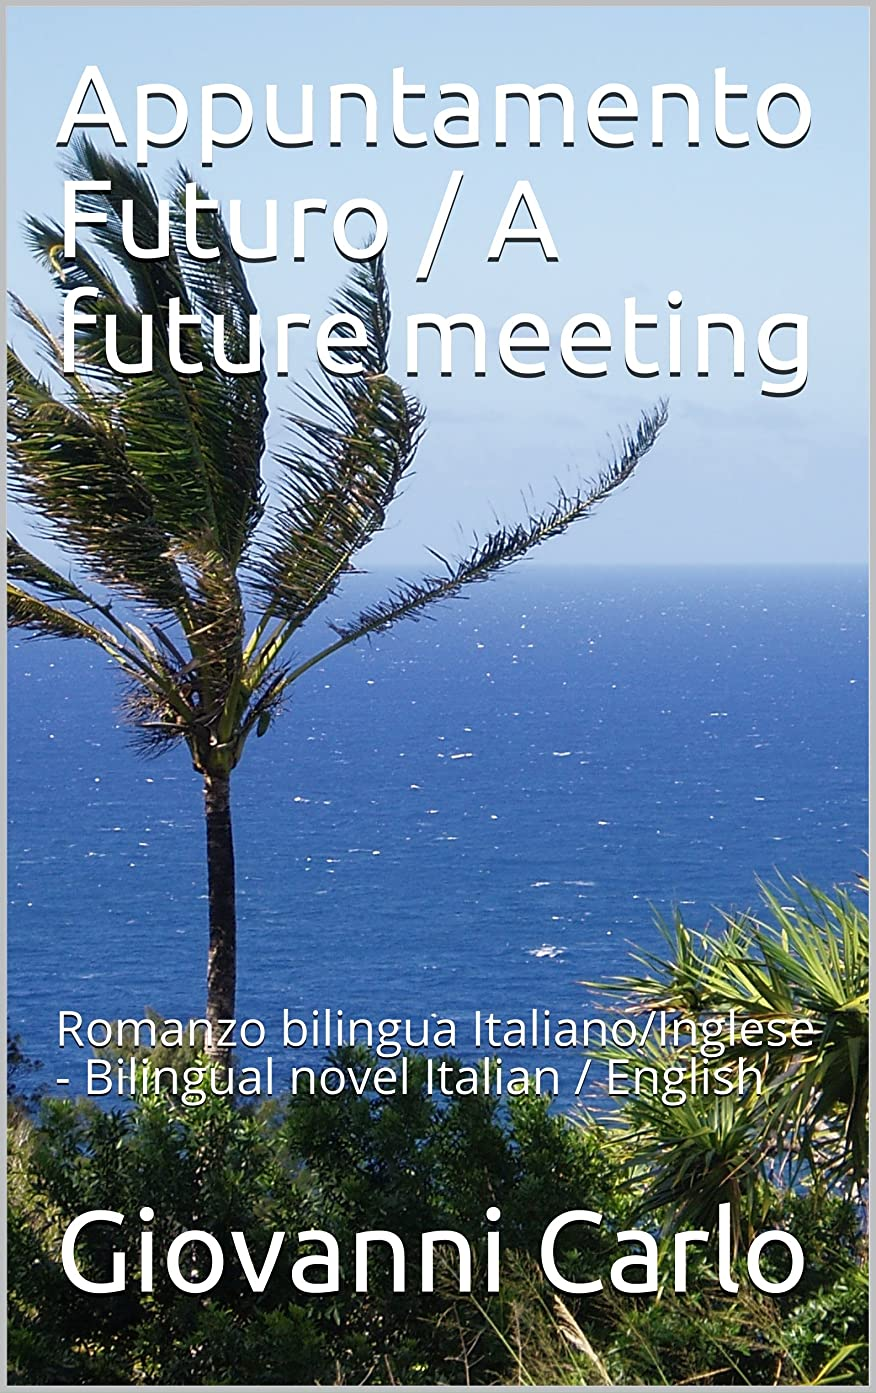 人類衛星店主Appuntamento Futuro - A future meeting: Romanzo bilingua Italiano/Inglese   -  Bilingual novel Italian / English (I romanzi di Giovanni Carlo) (Italian Edition)